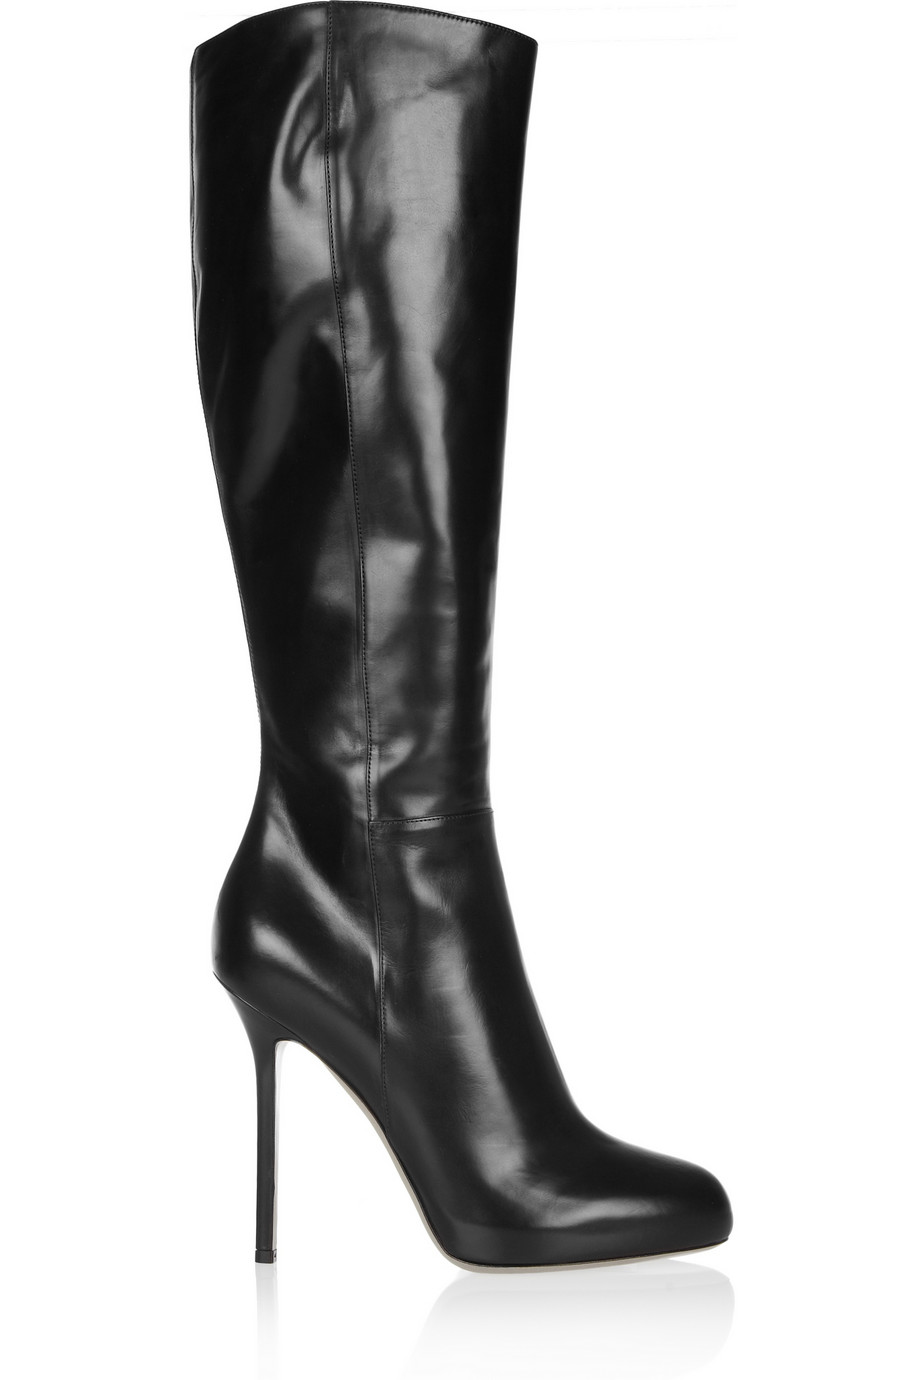 Sergio rossi Black Leather Boots in Black | Lyst